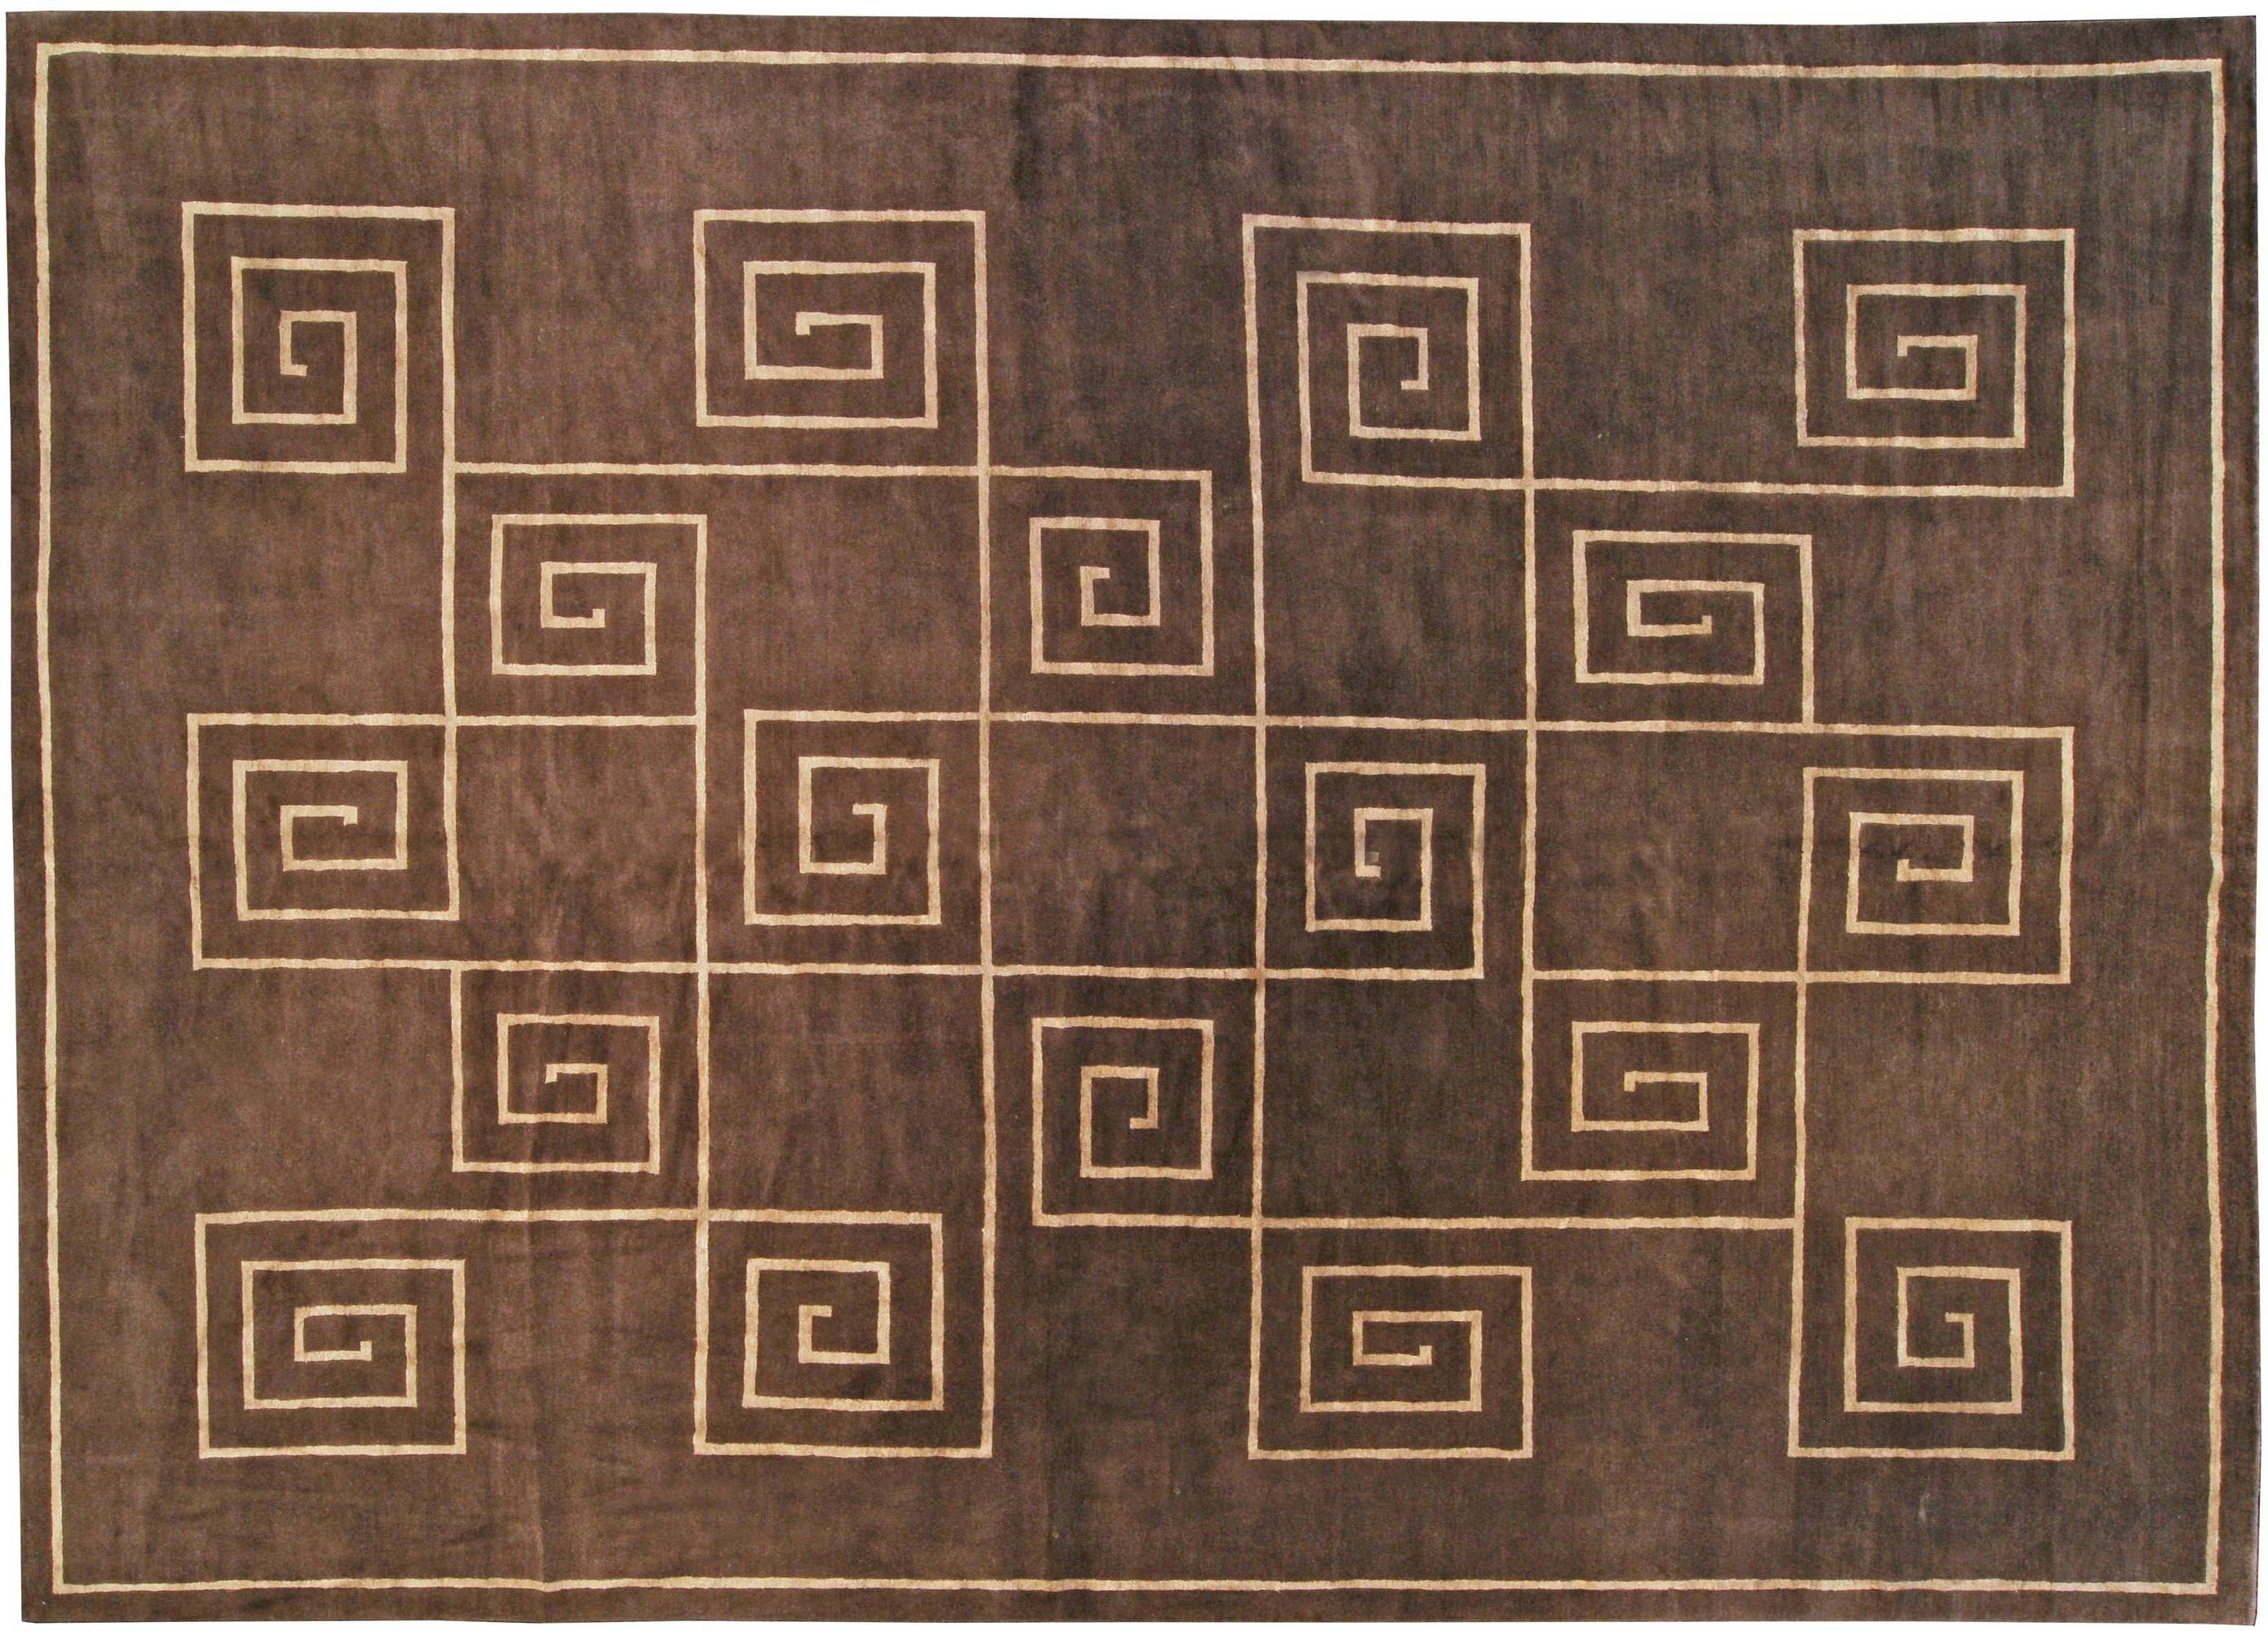 Picture of: Tibetan Greek Key In Chocolate Brown And Golden Beige And Silk Rug N10957 By Dlb